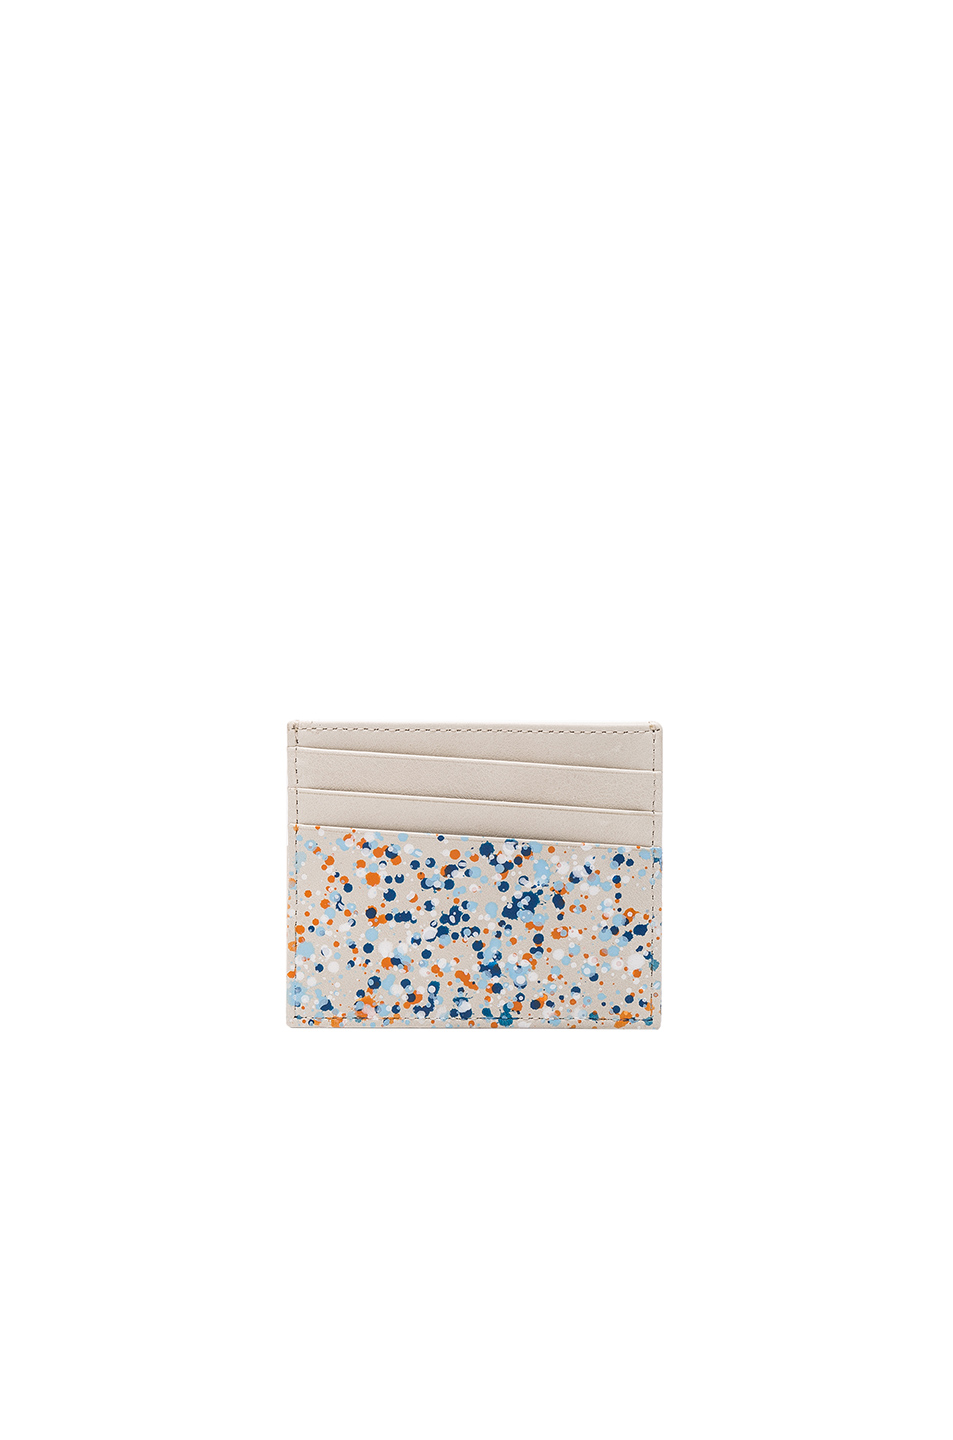 Maison Margiela Pollock Effect Cardholder in White,Abstract